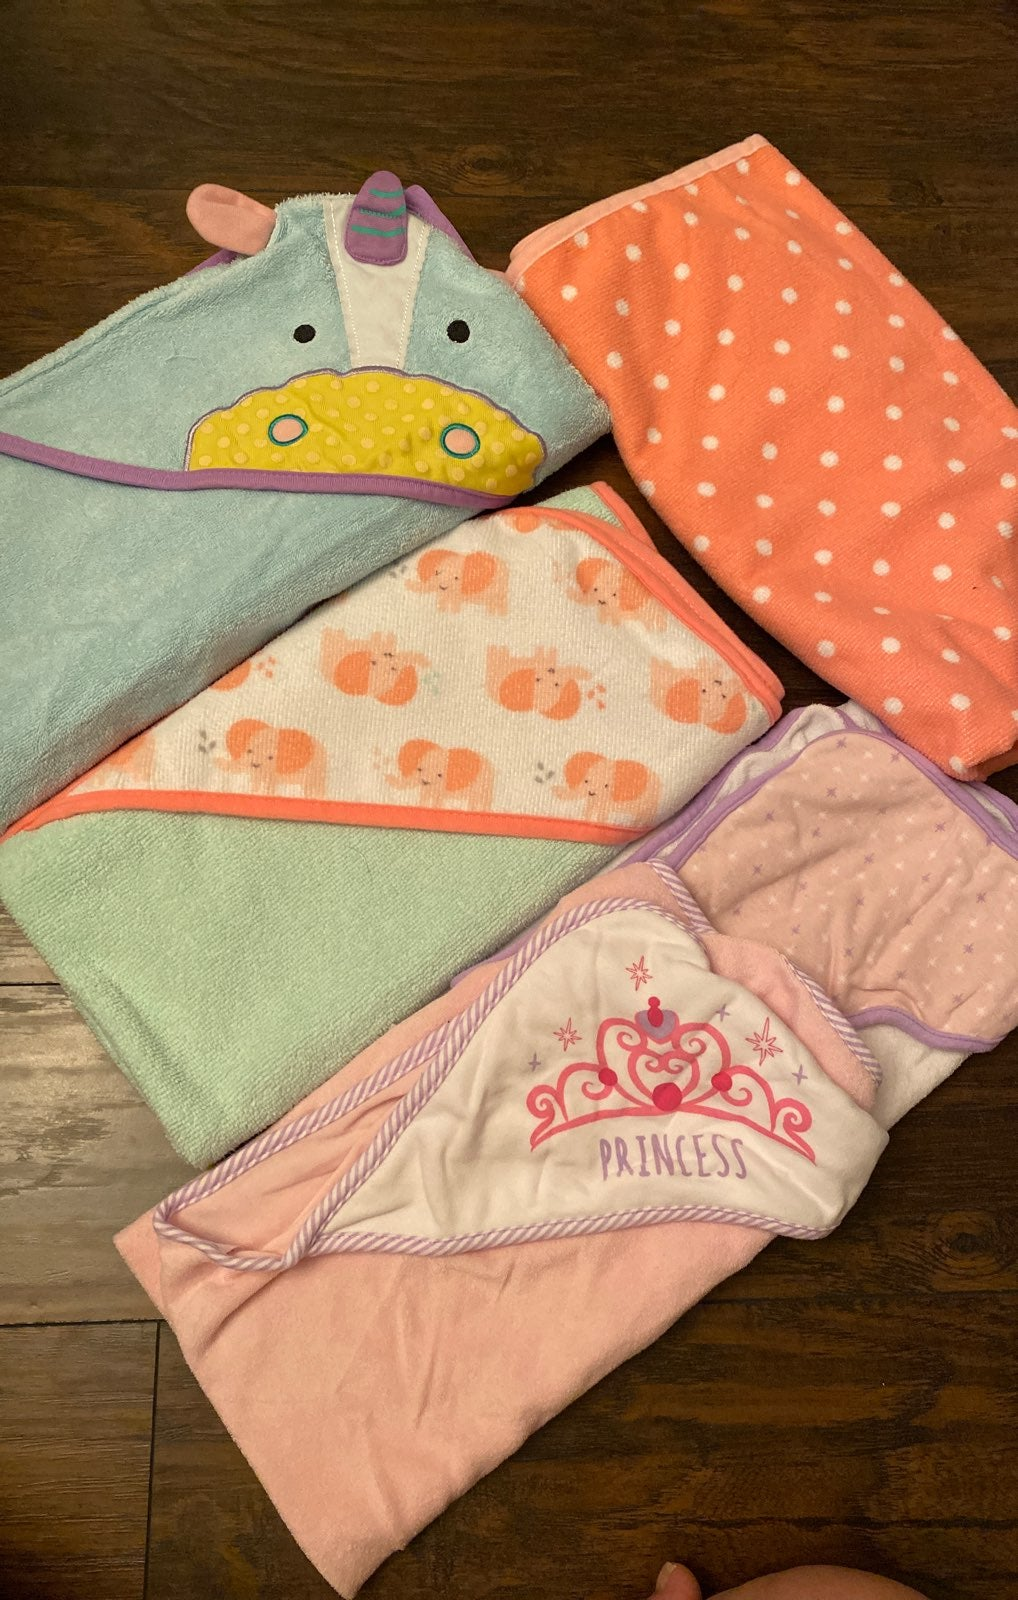 Baby towels for sale